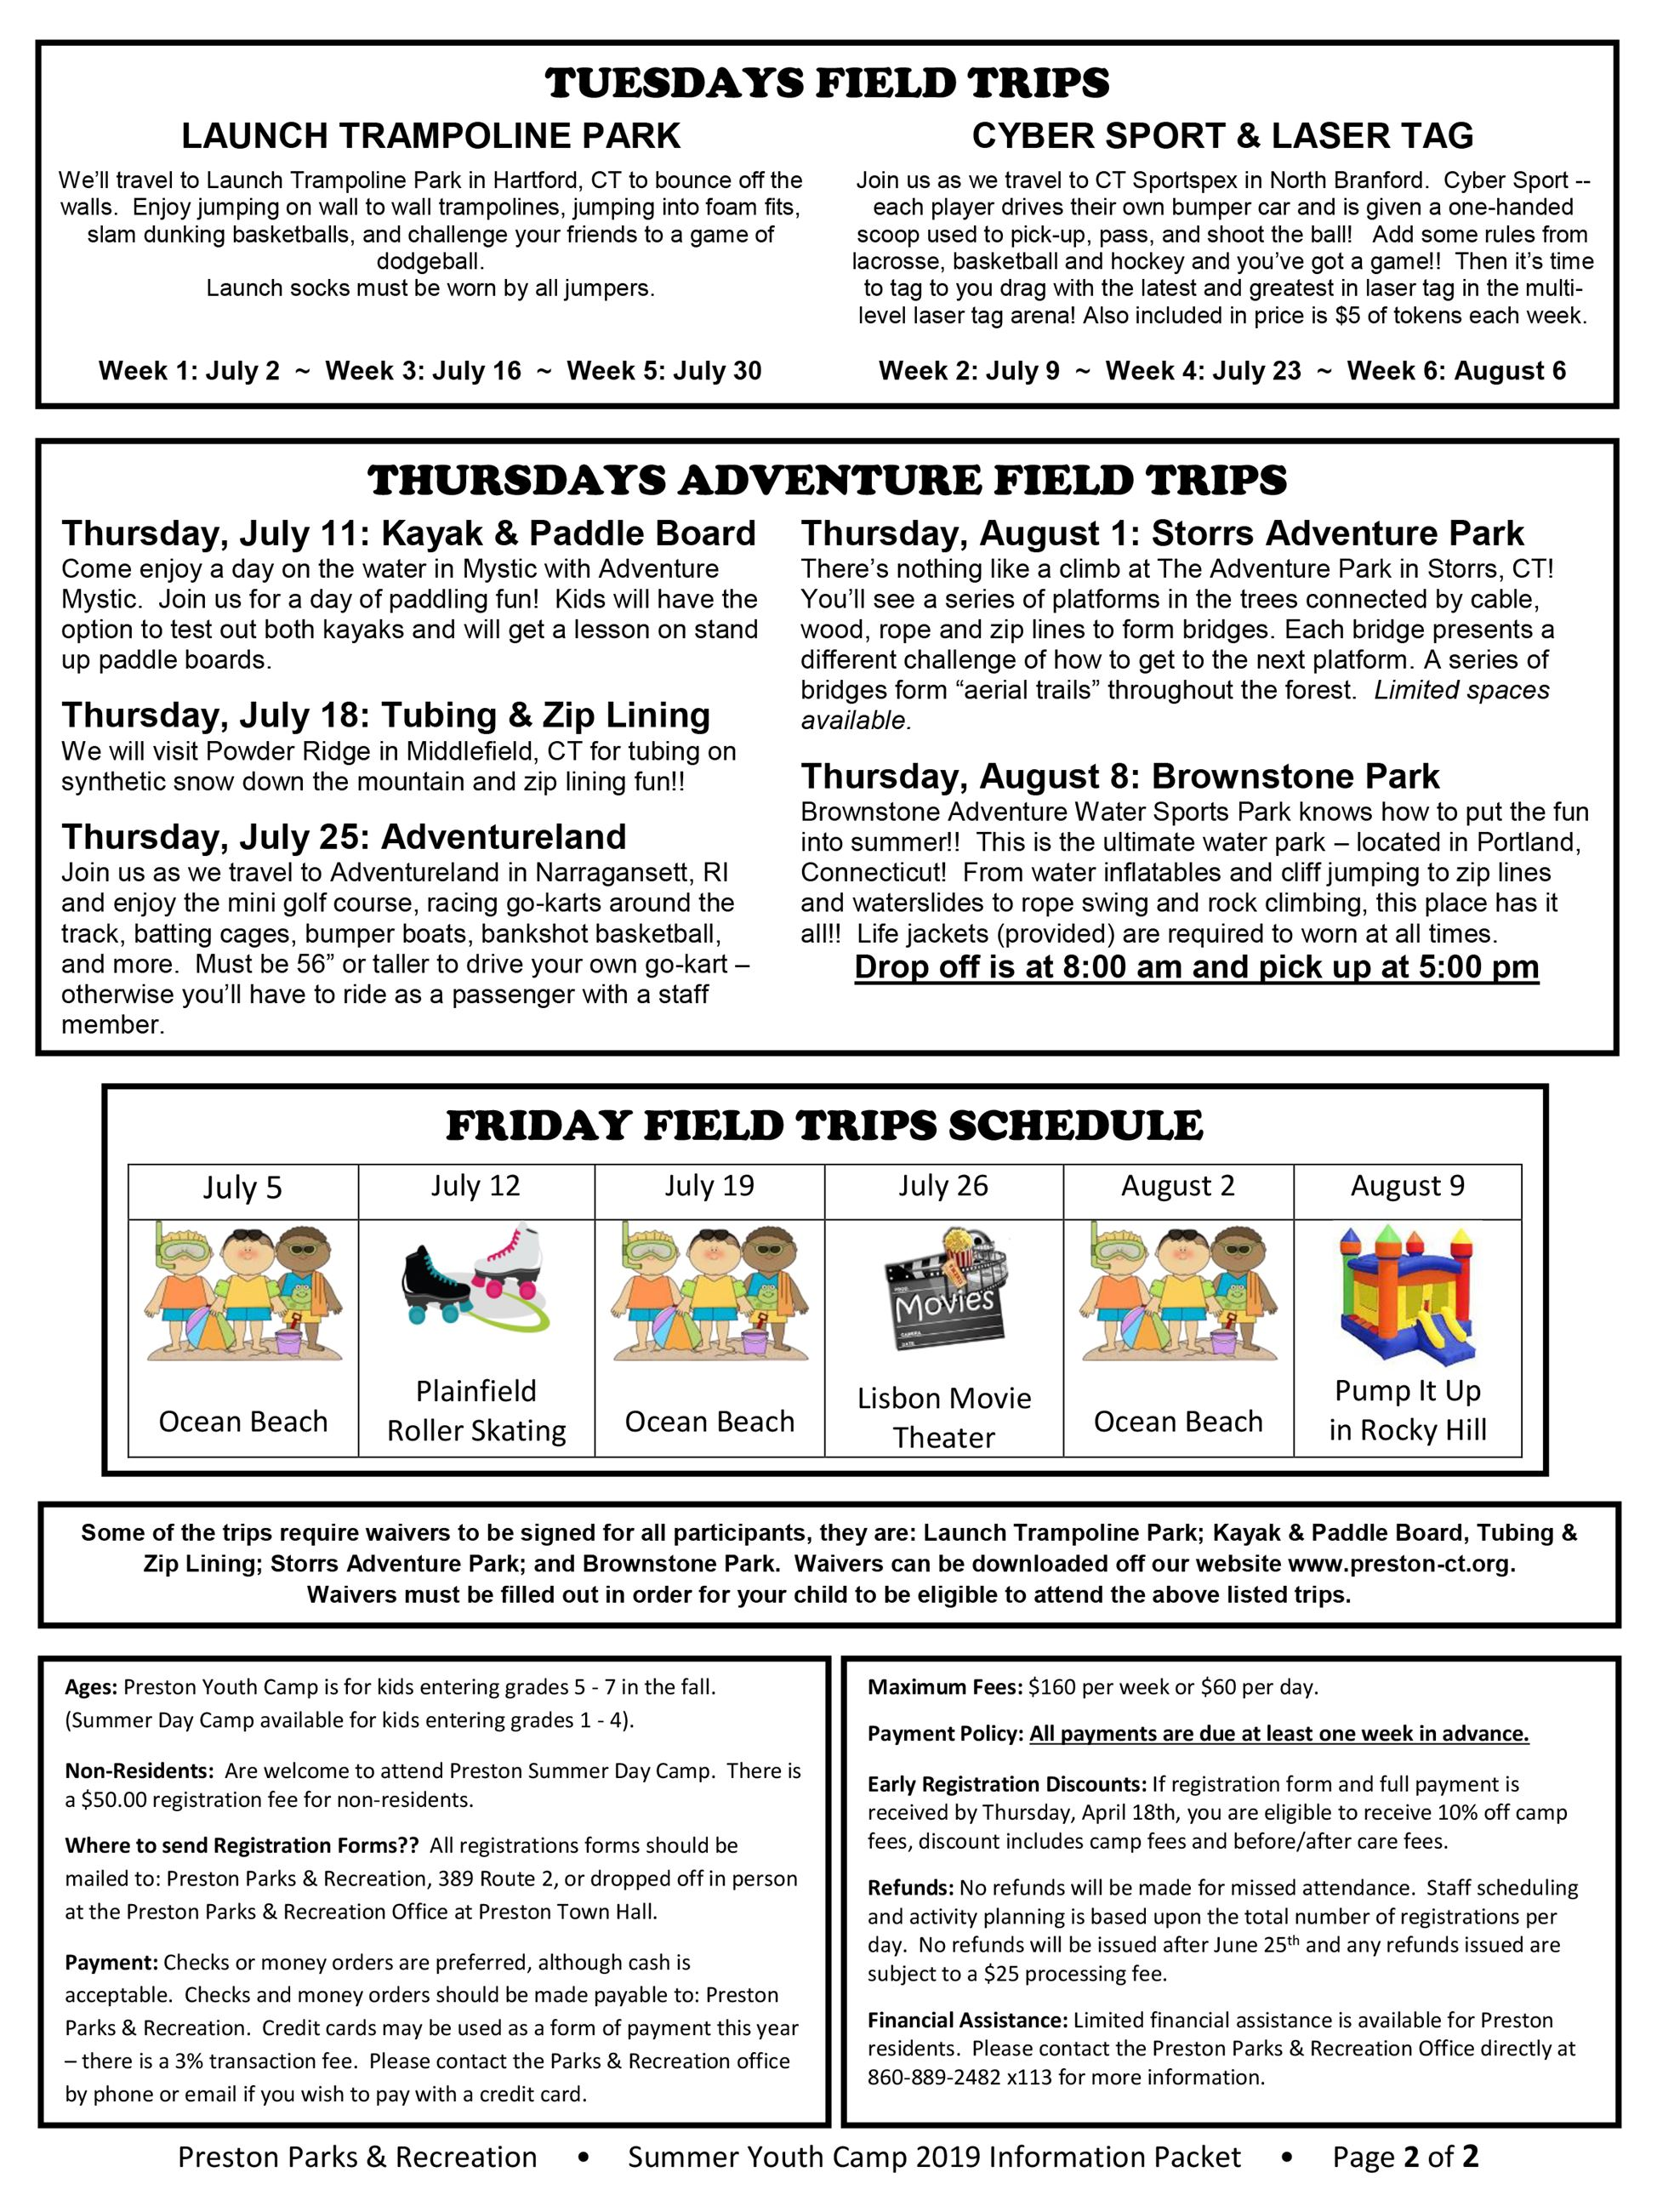 SummerYouthCampFlyer2019-2